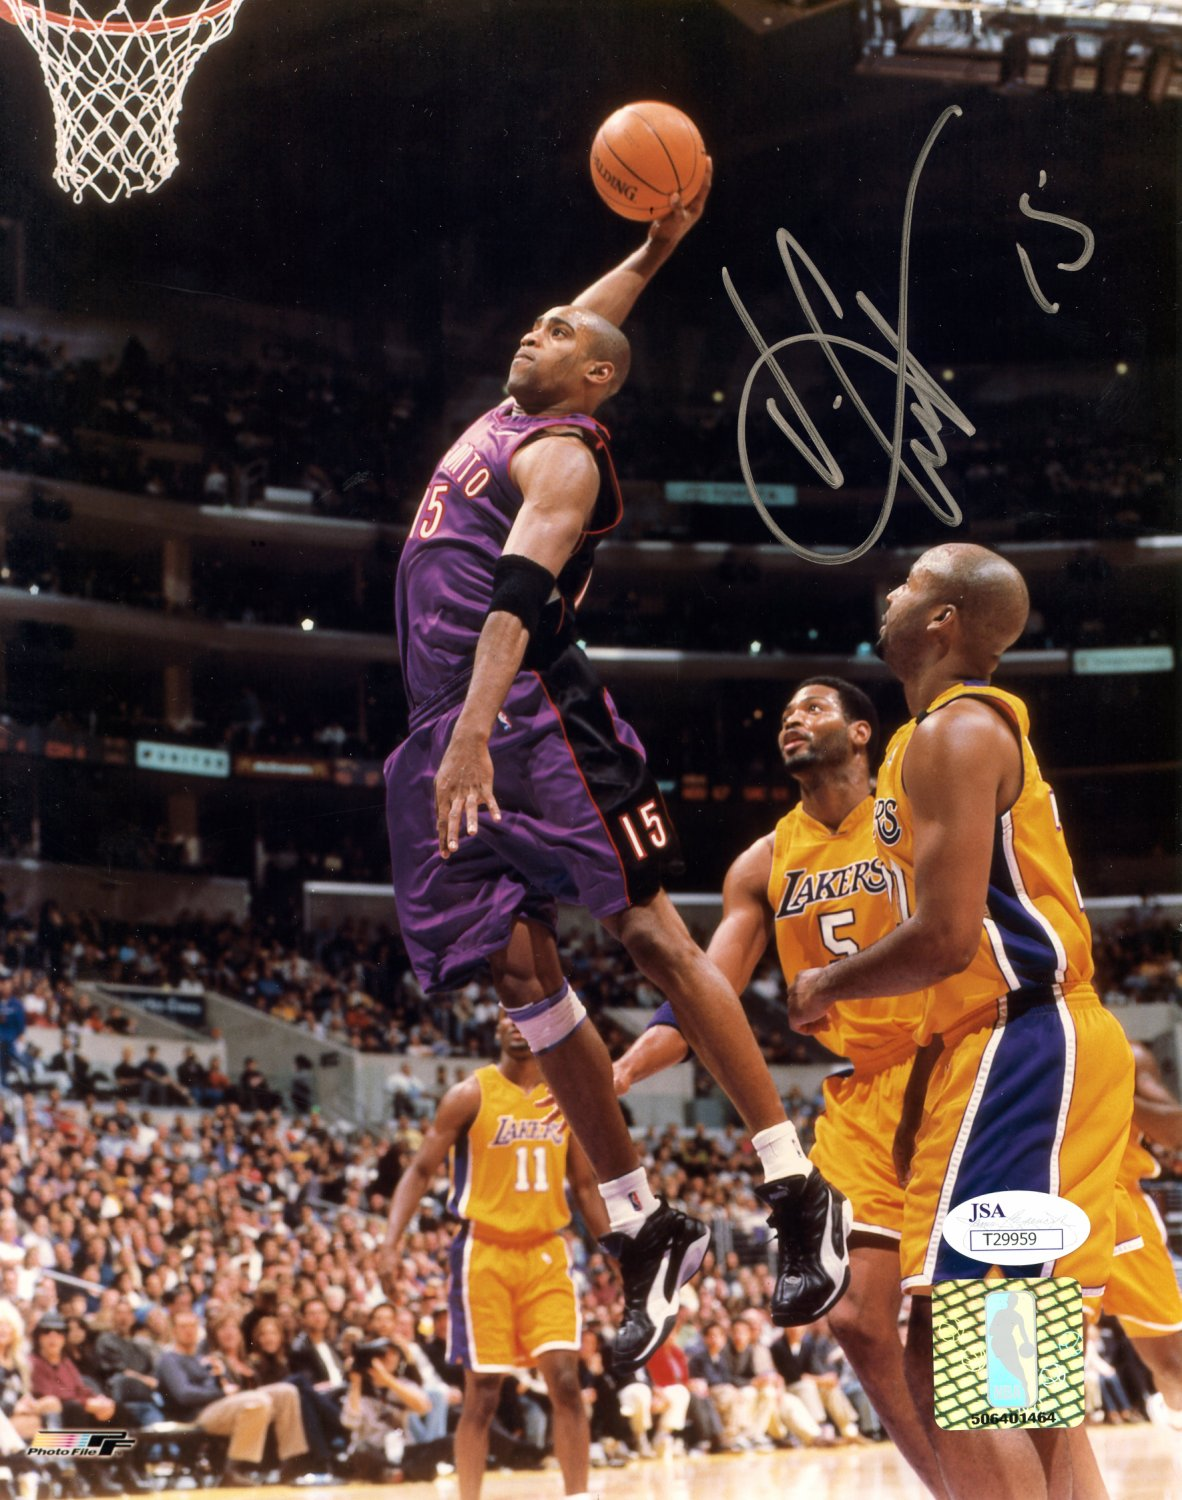 9a20abd77 Vince Carter Toronto Raptors Autographed Signed 8x10 Photo - JSA ...